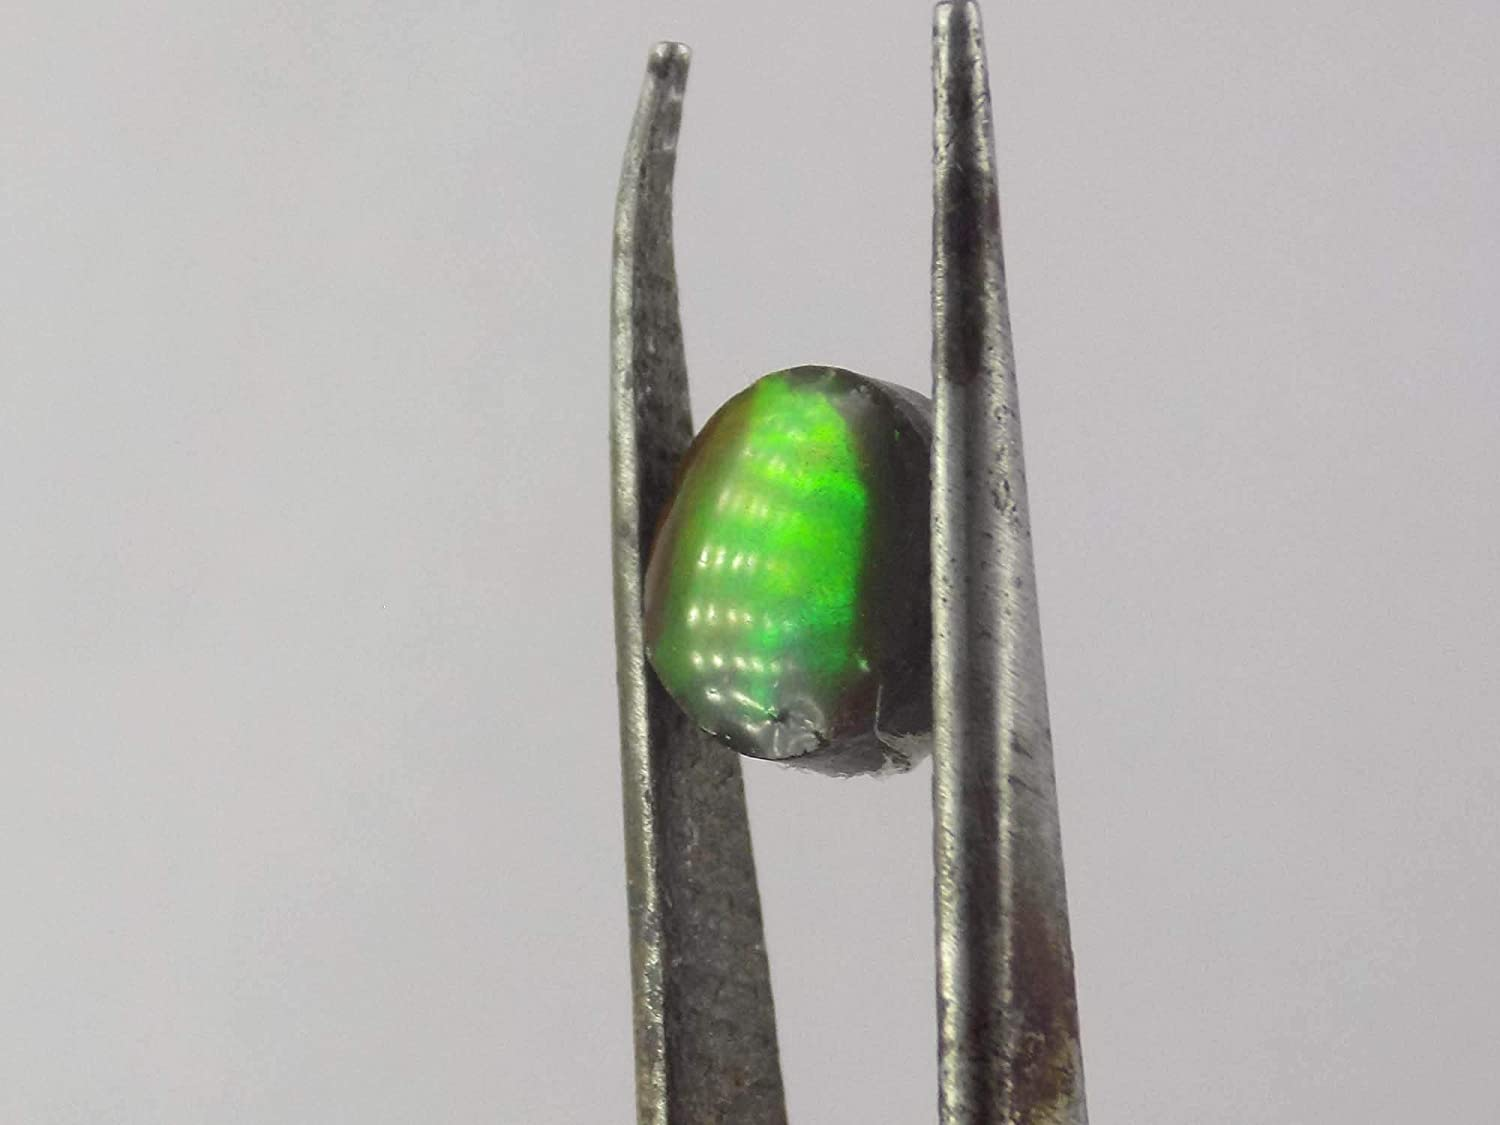 Supreme Top Grade Quality 100/% Natural Ammolite Pear Shape Cabochon Loose Gemstone For Making Jewelry 21.5 Ct 23X21X5 mm AK-3422